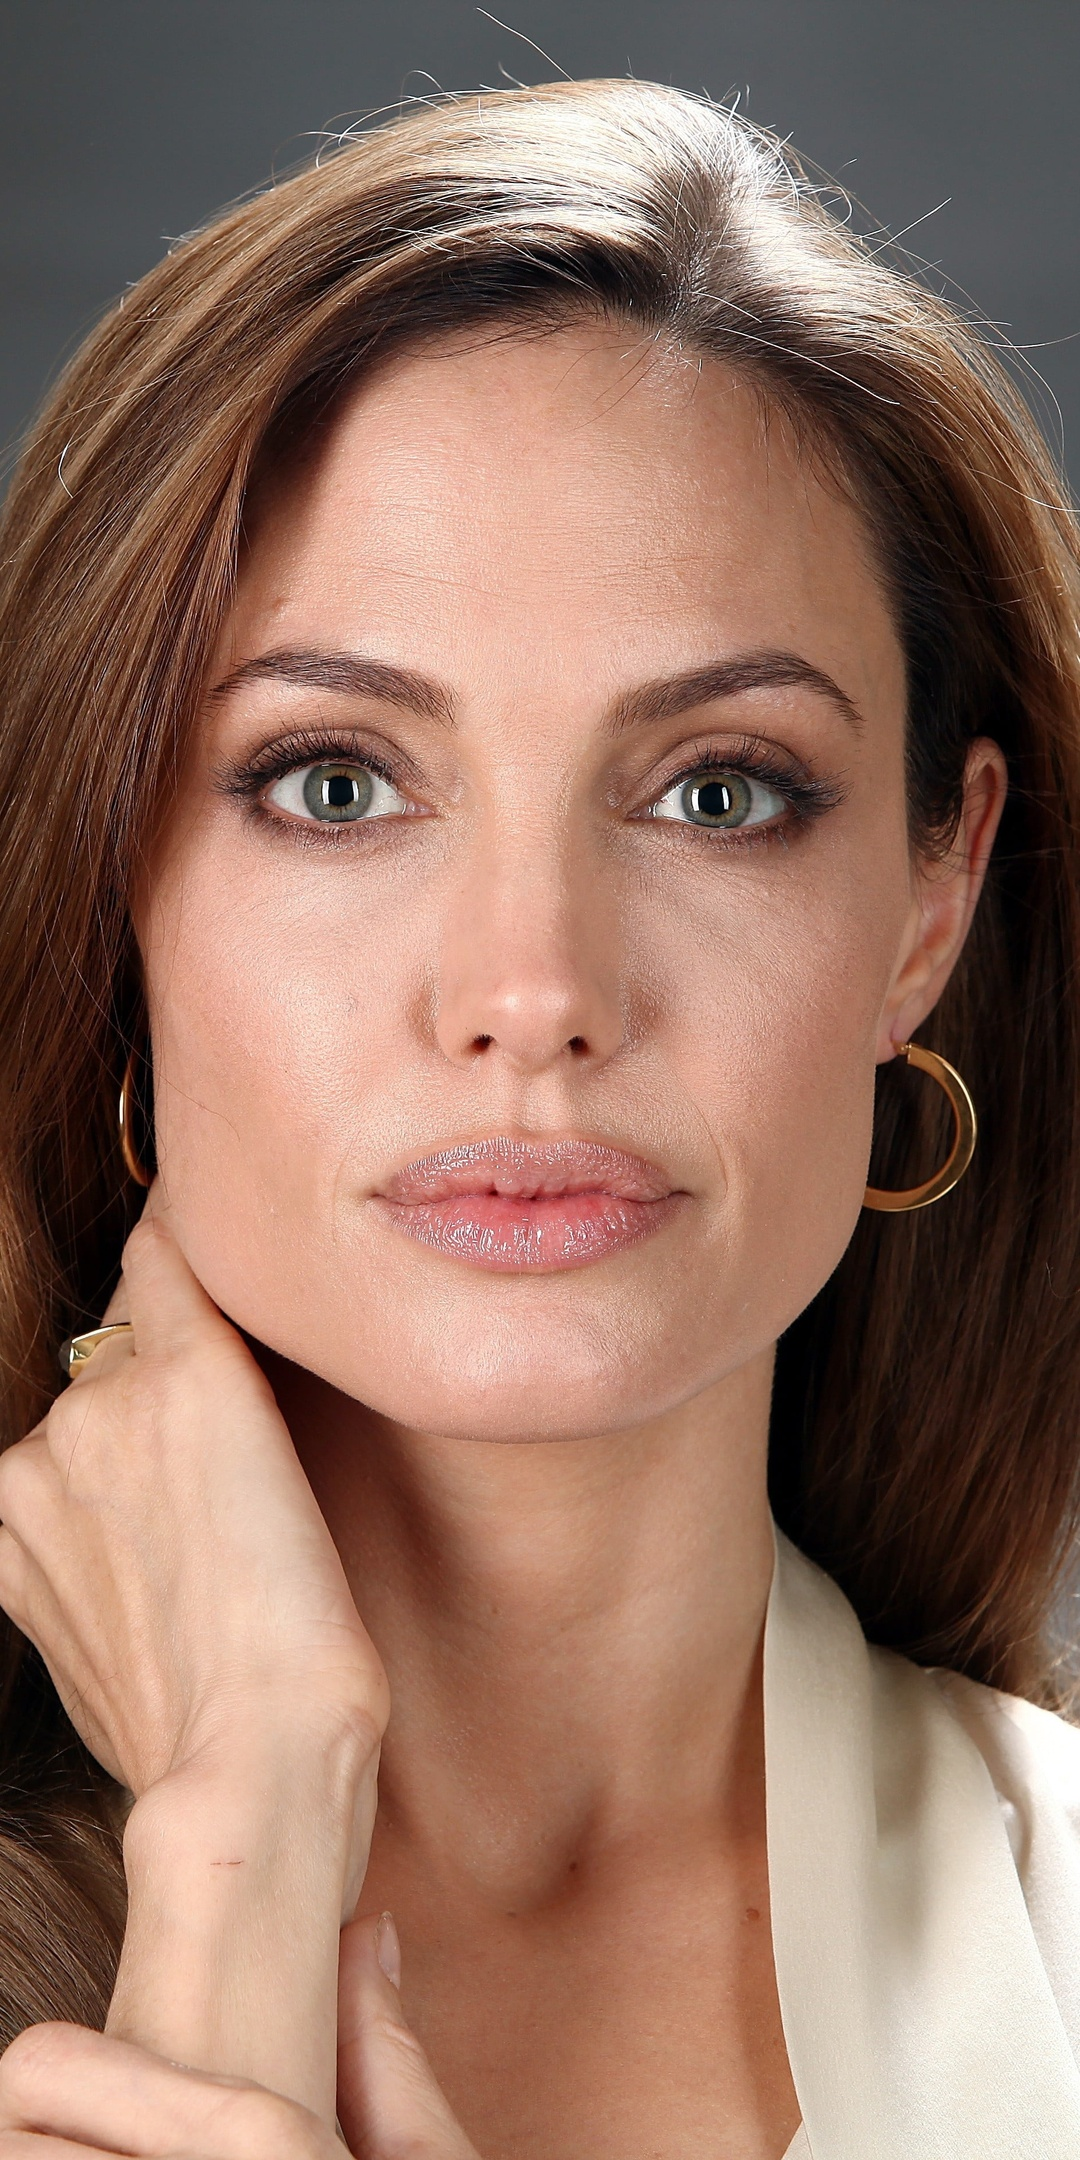 x Angelina Jolie new wallpapers Iphone XSIphone Iphone X